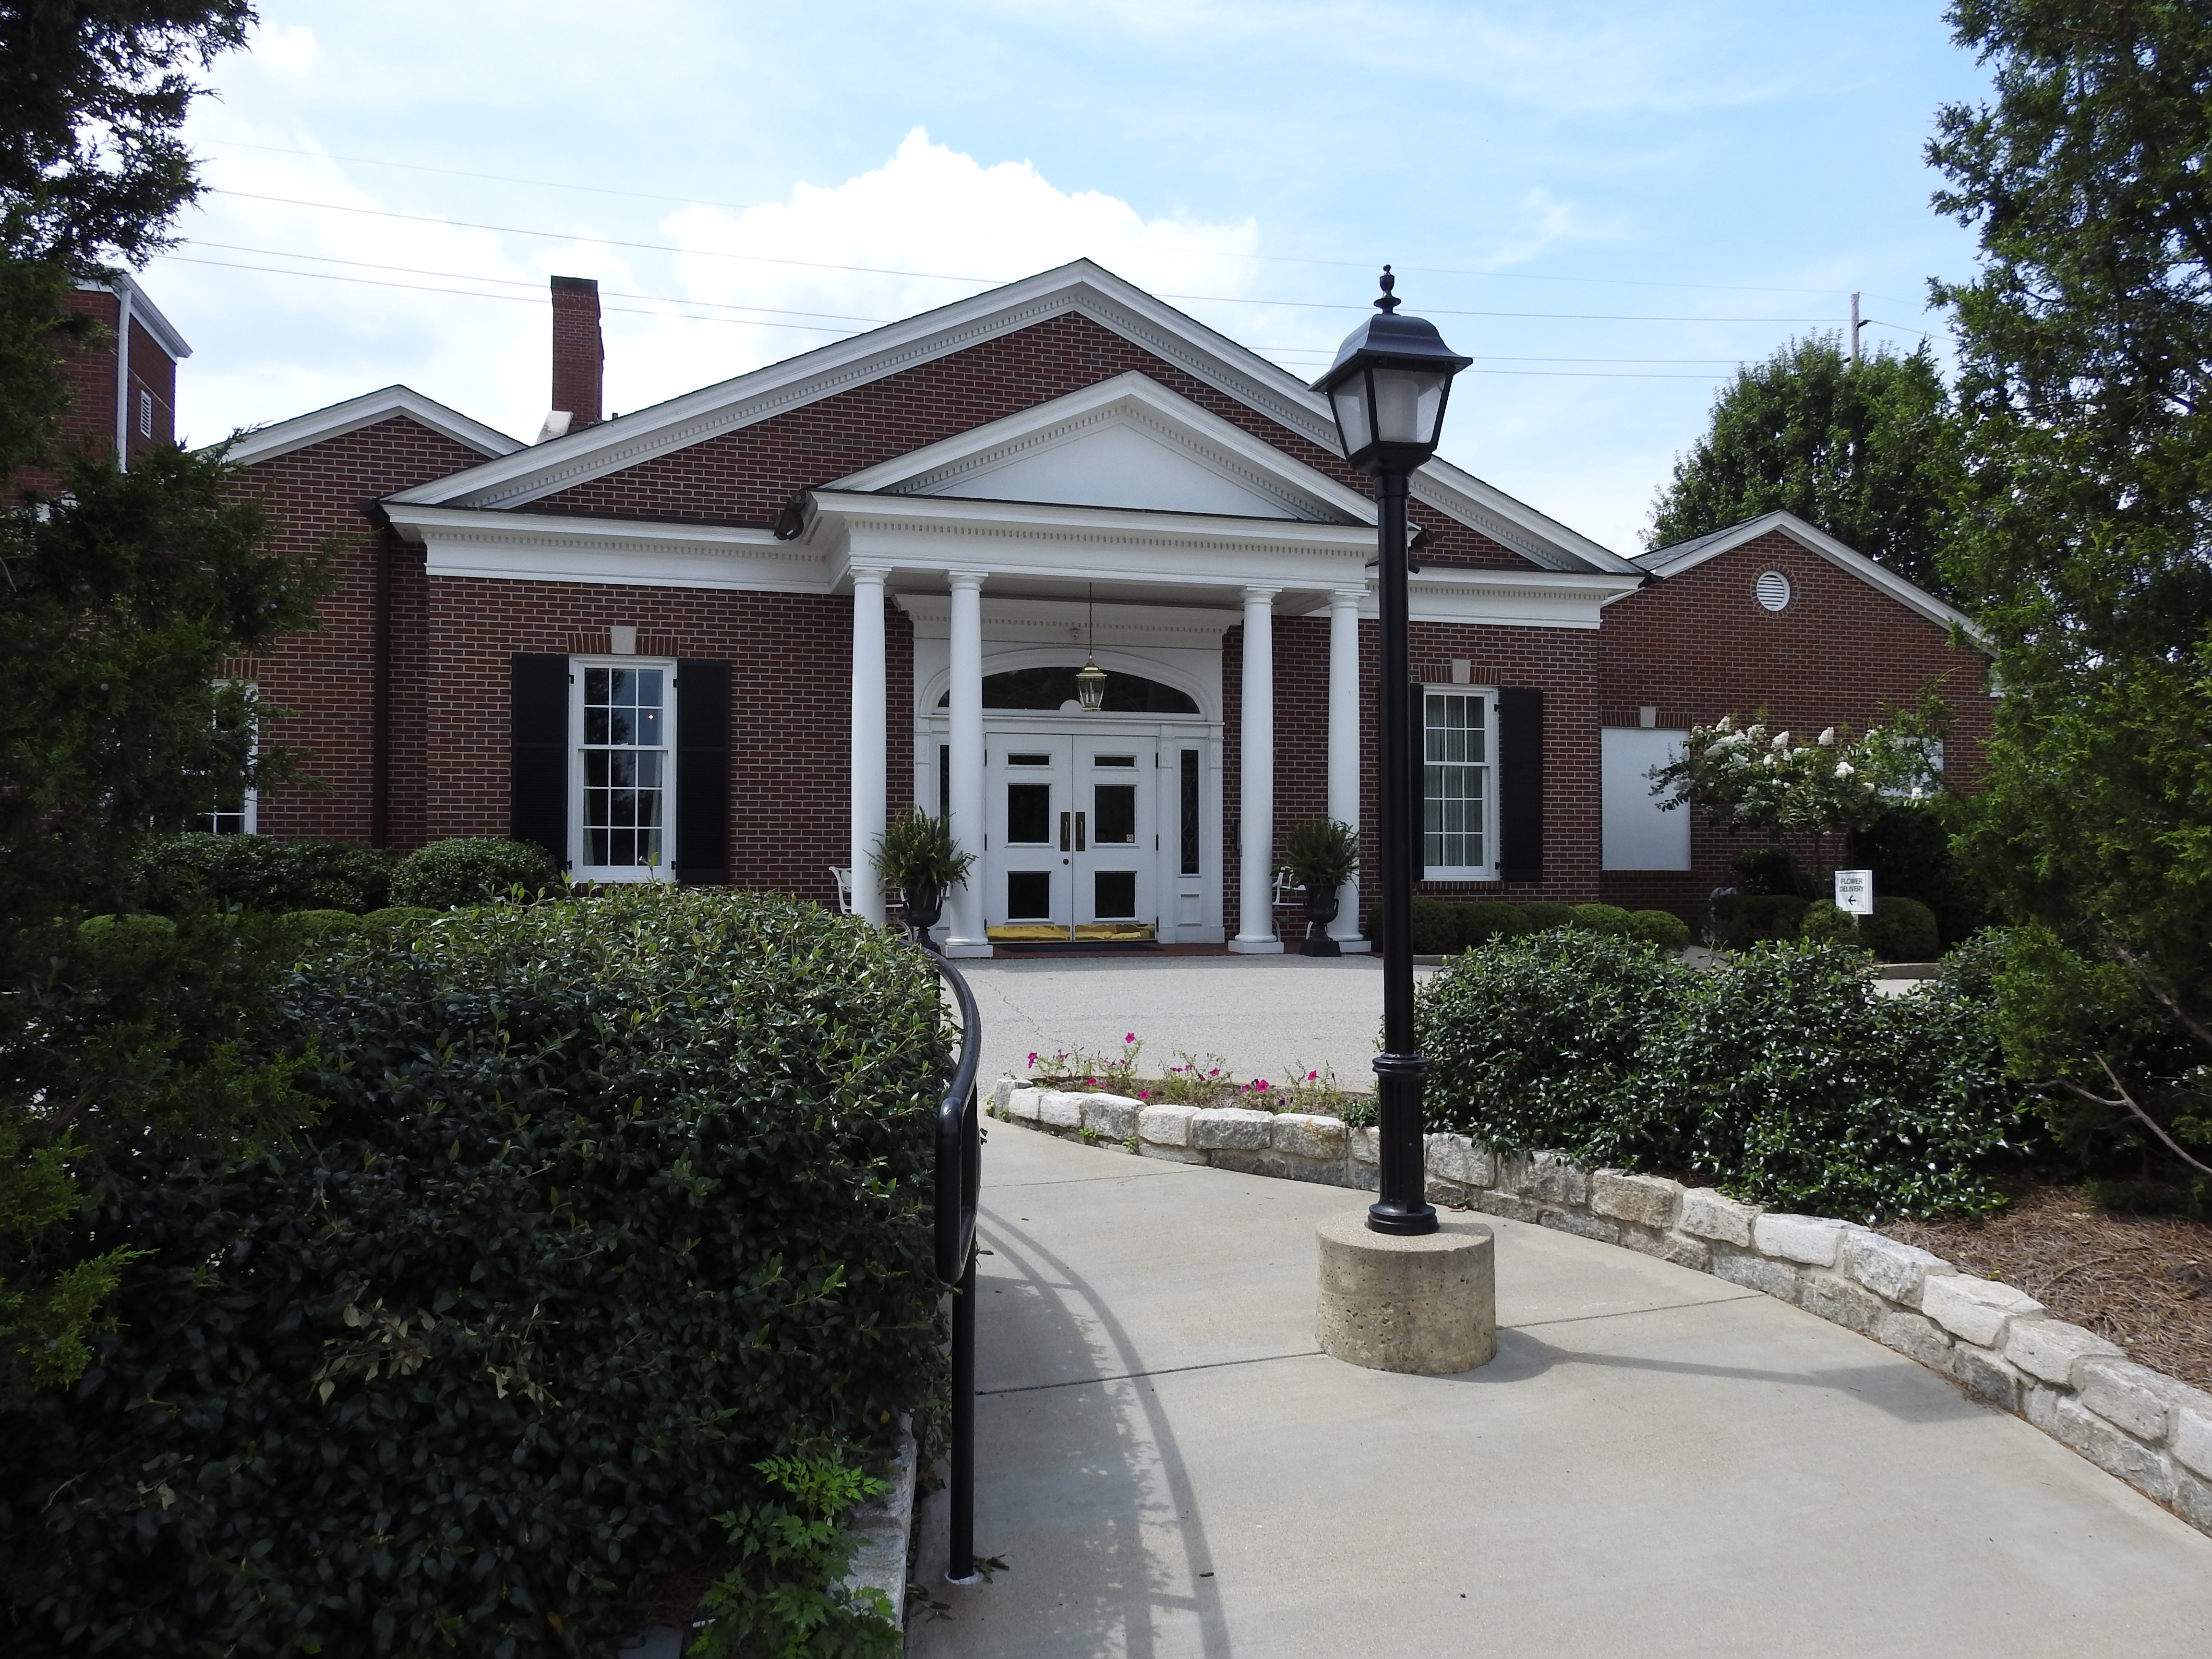 Pearsons Funeral Home image 0